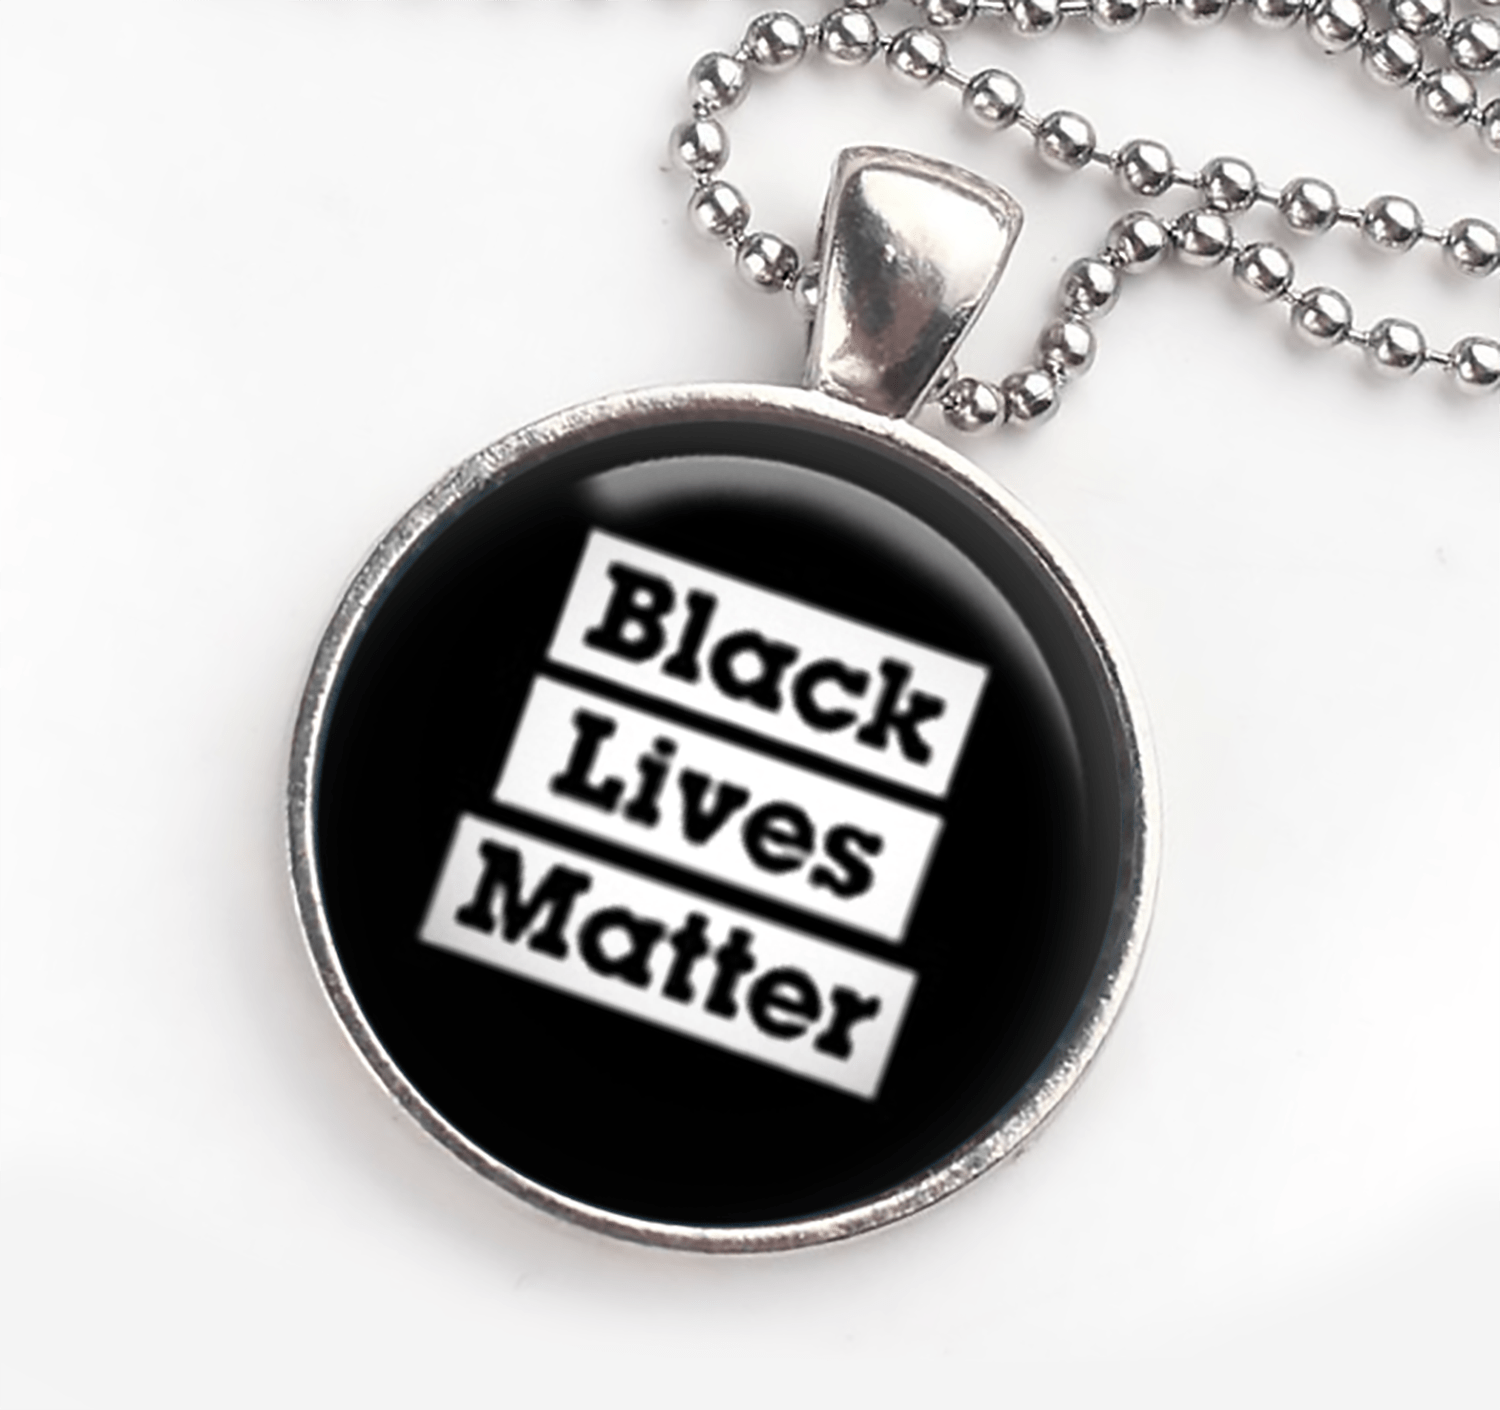 Black Lives Matter Necklace in Silver Setting Necklaces Buttons For the People